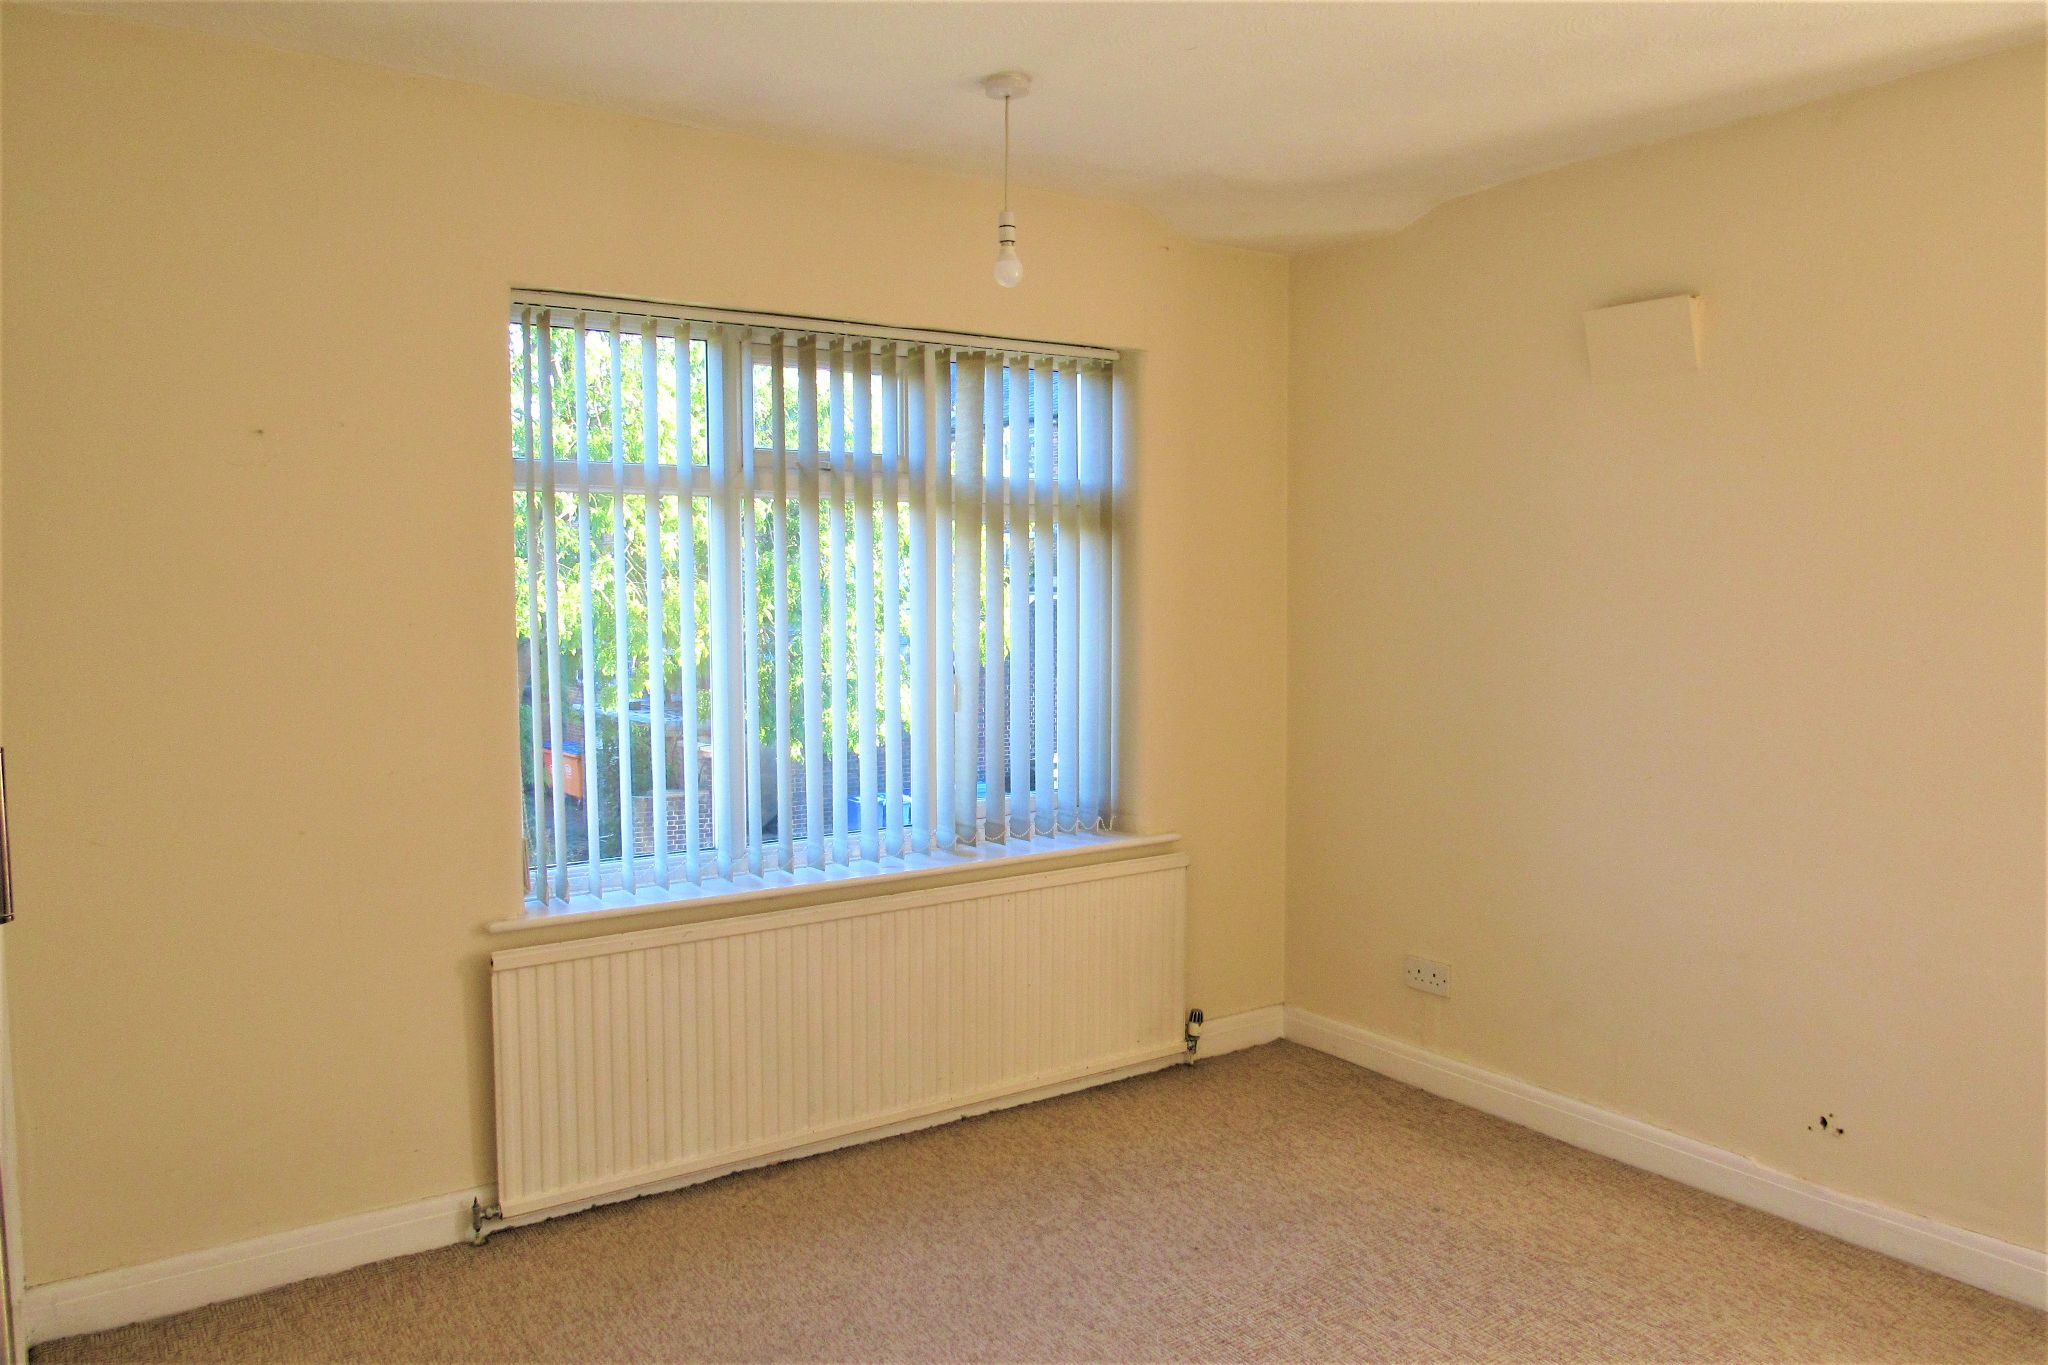 3 bedroom semi-detached house For Sale in Manchester - Photograph 21.